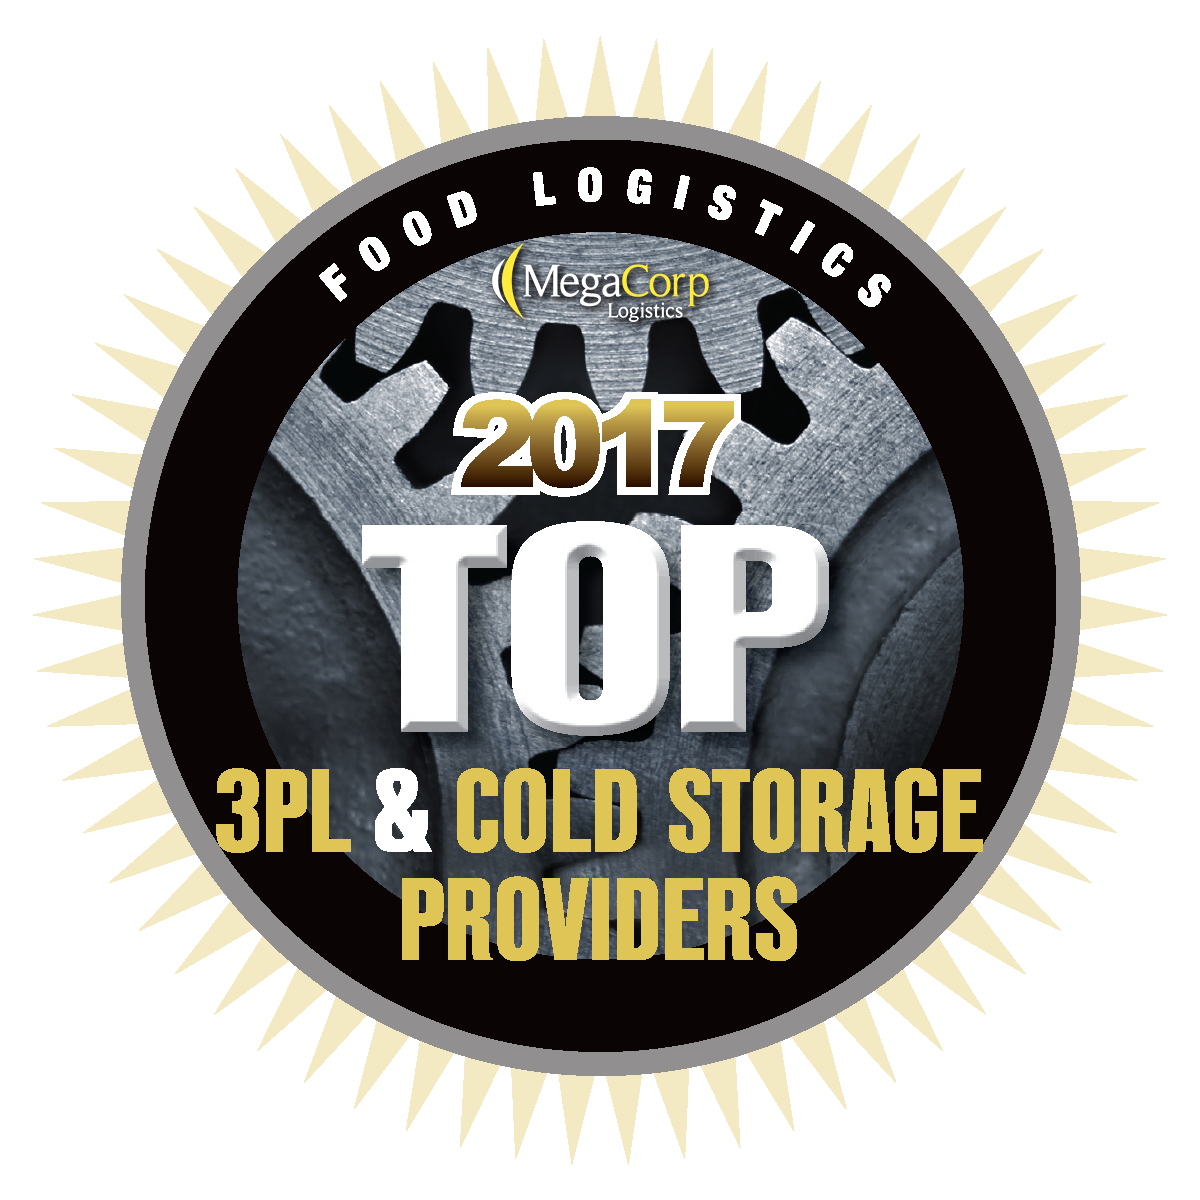 Food Logistics 2017 Top 3PL and Cold Storage Providers badge